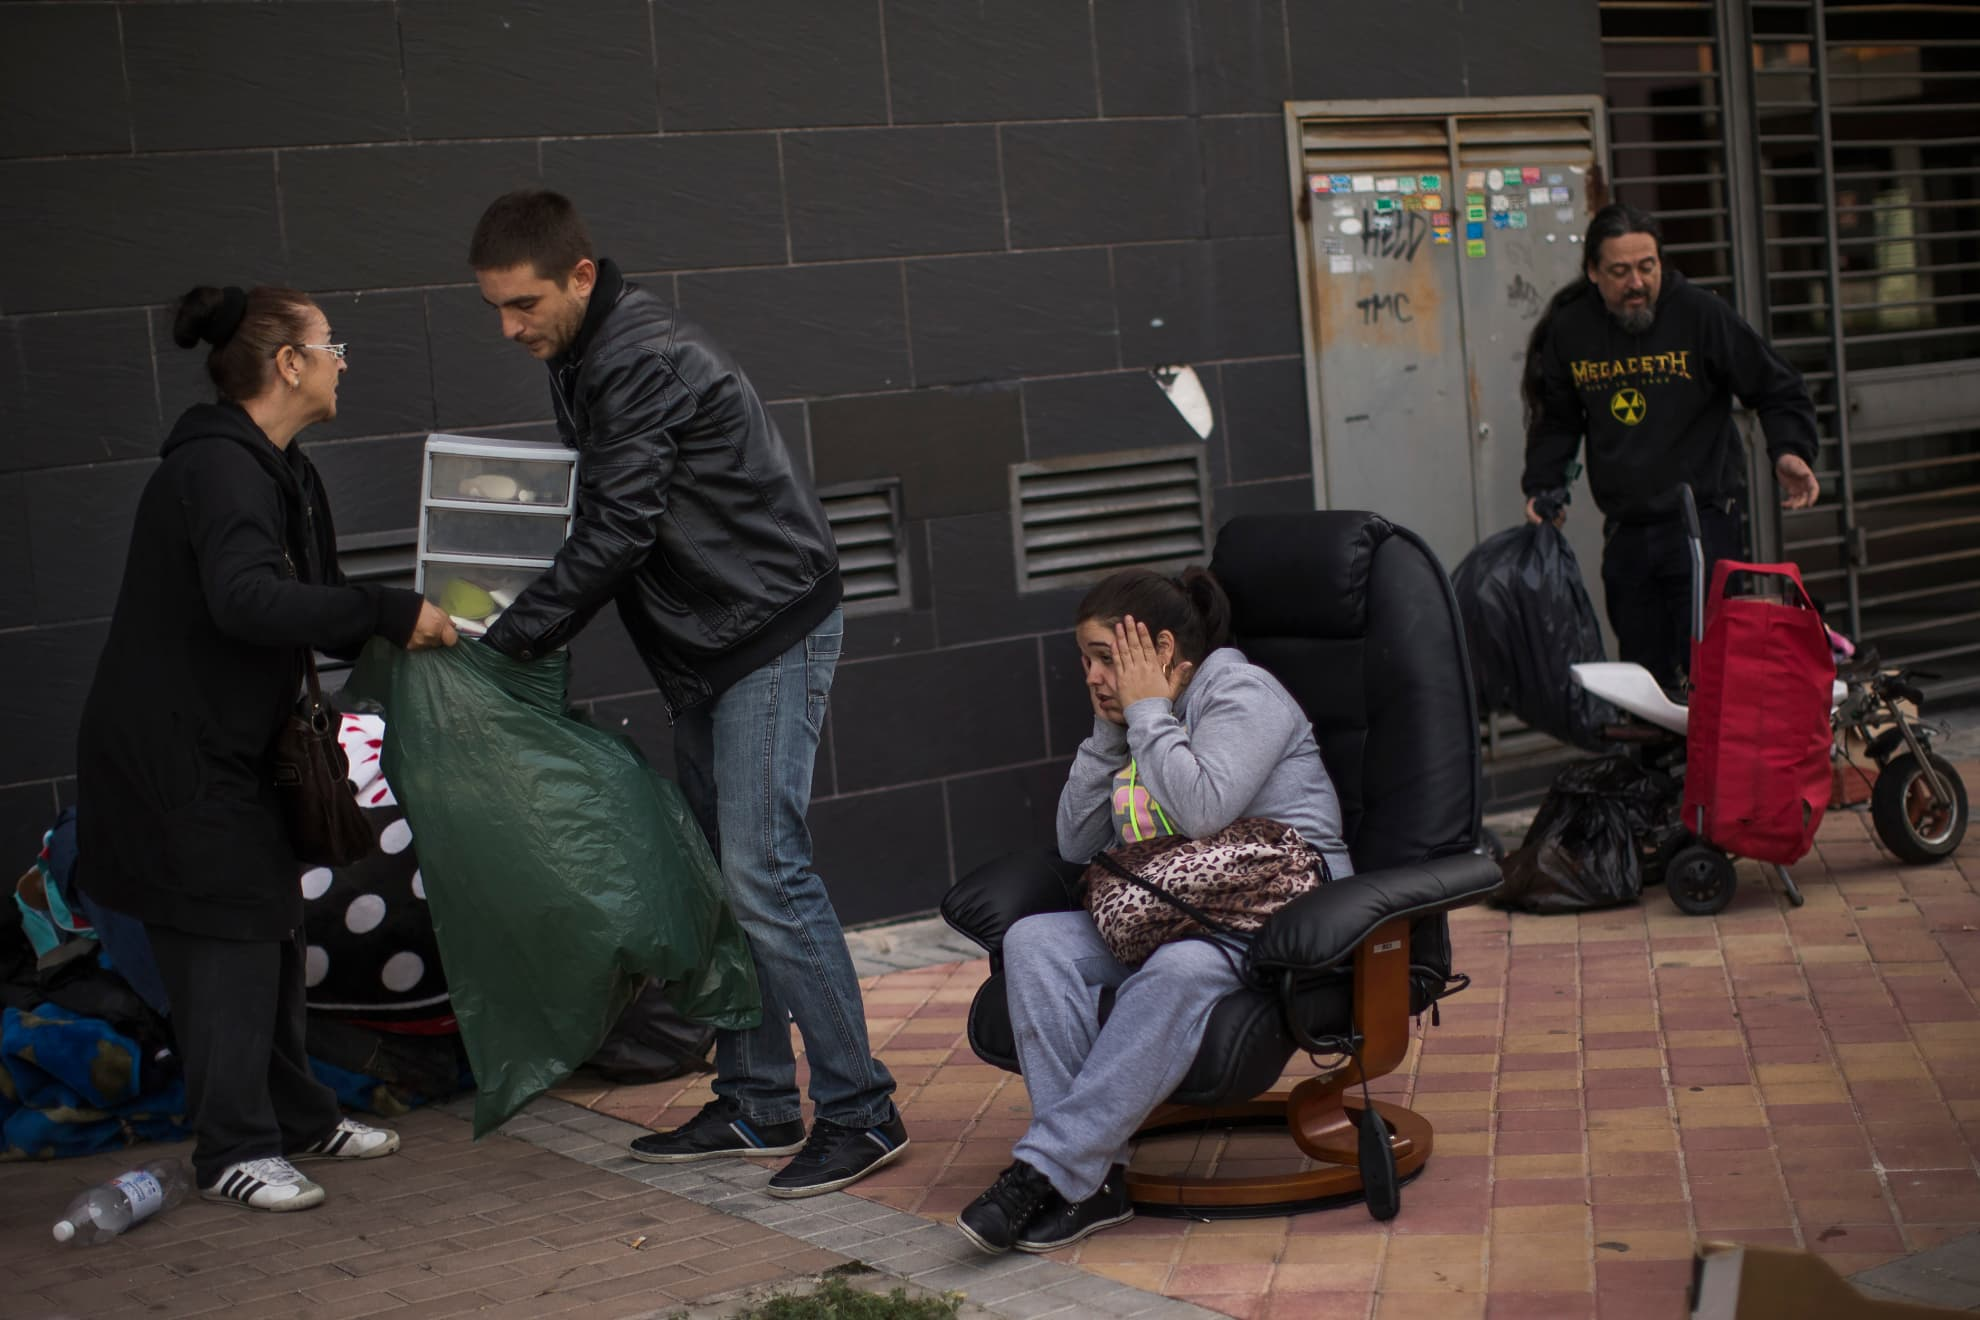 Veronica Labradas, center, stands outside her apartment with her belongings after the police evict her and her family in Madrid, Wednesday, Oct. 22, 2014. Labradas, and her family occupied an apartment six months ago as they could not afford to pay their rent after loosing their business.